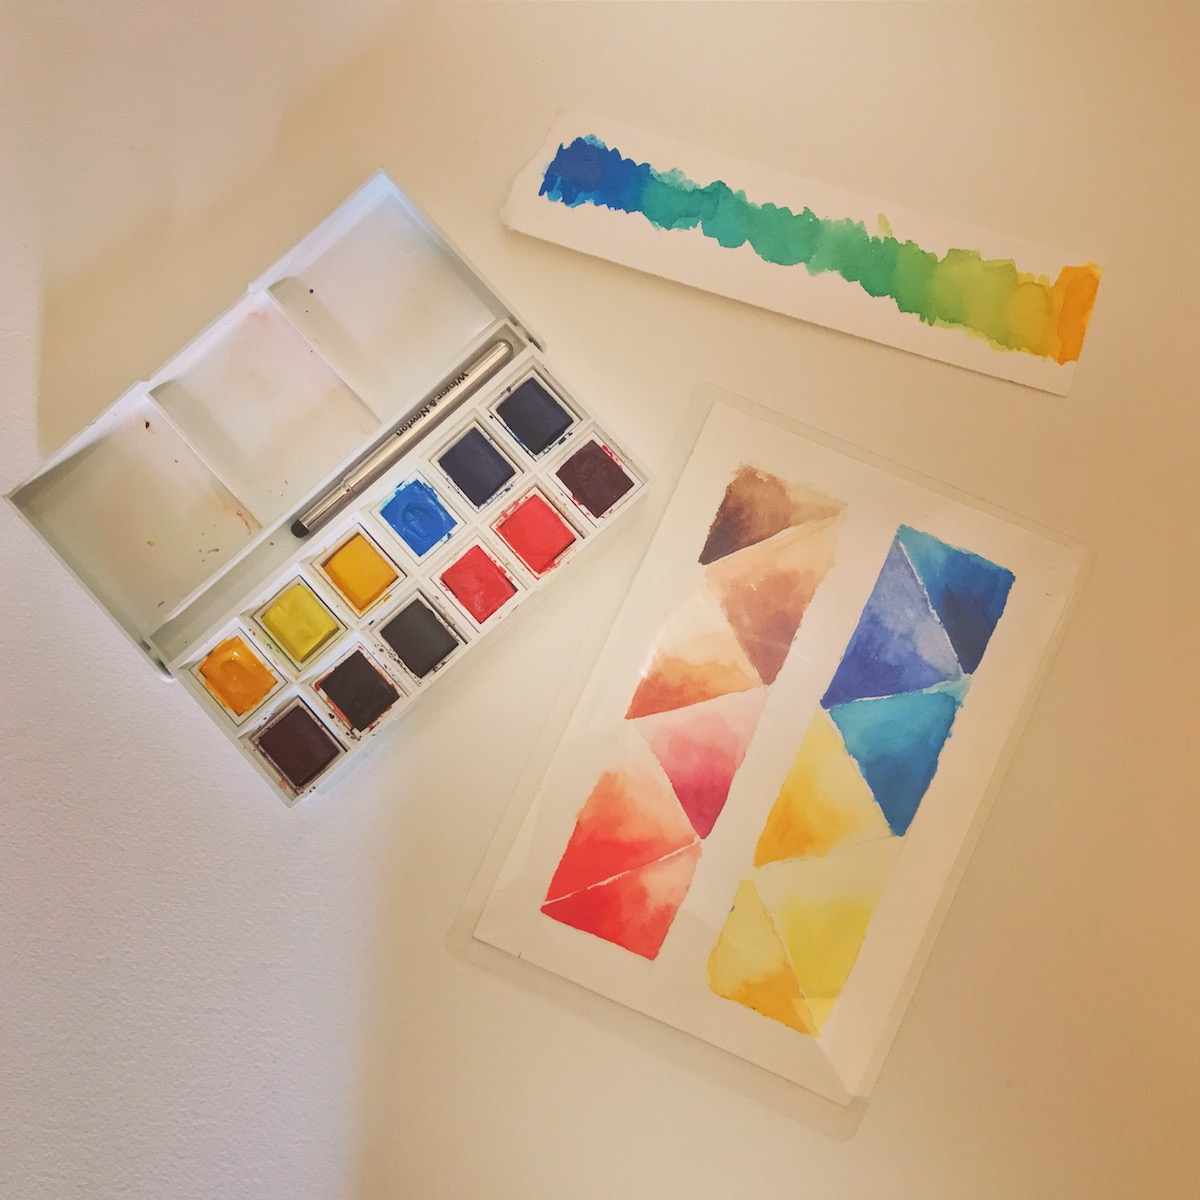 Watercolor exercises - painting basic shapes